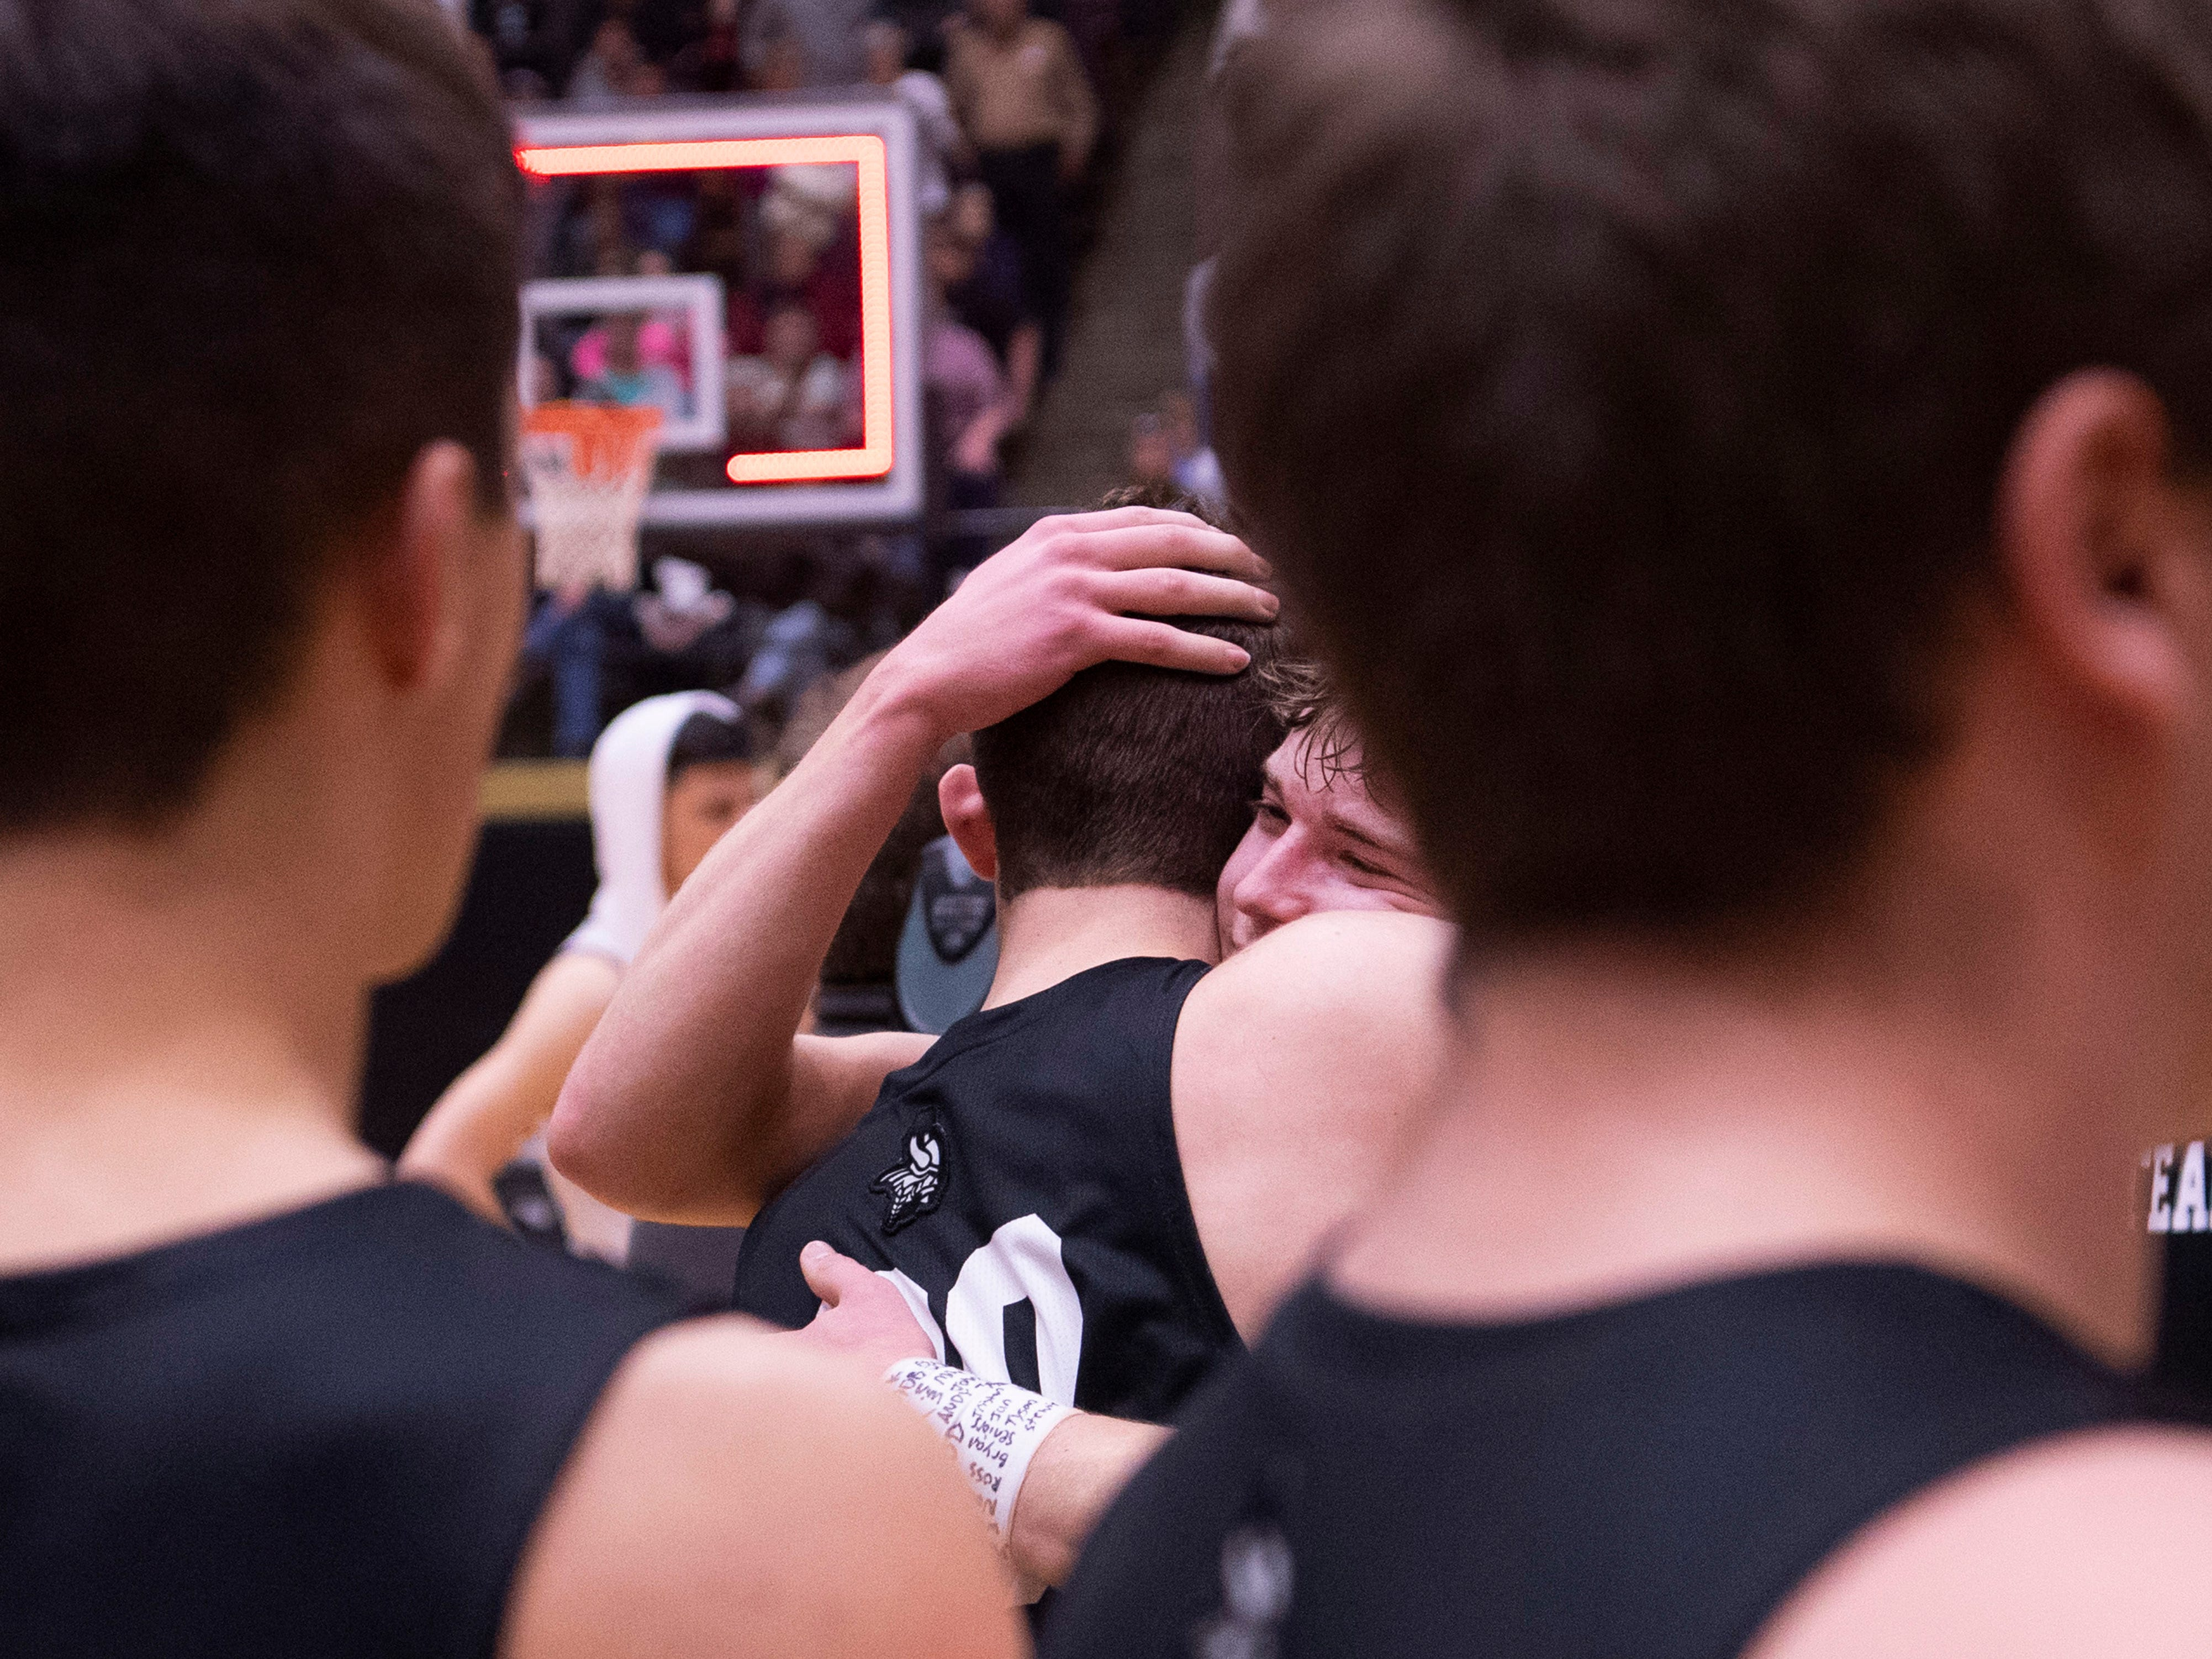 Barr-Reeve's Devin Graber (30) is hugged by Barr-Reeve's Isaac Wagler (12), right center, after the 1A Boys Indiana Semi-State Basketball Tournament at the Hatchet House in Washington, Ind., Saturday afternoon. Barr-Reeve beat Bloomfield to advance to state.